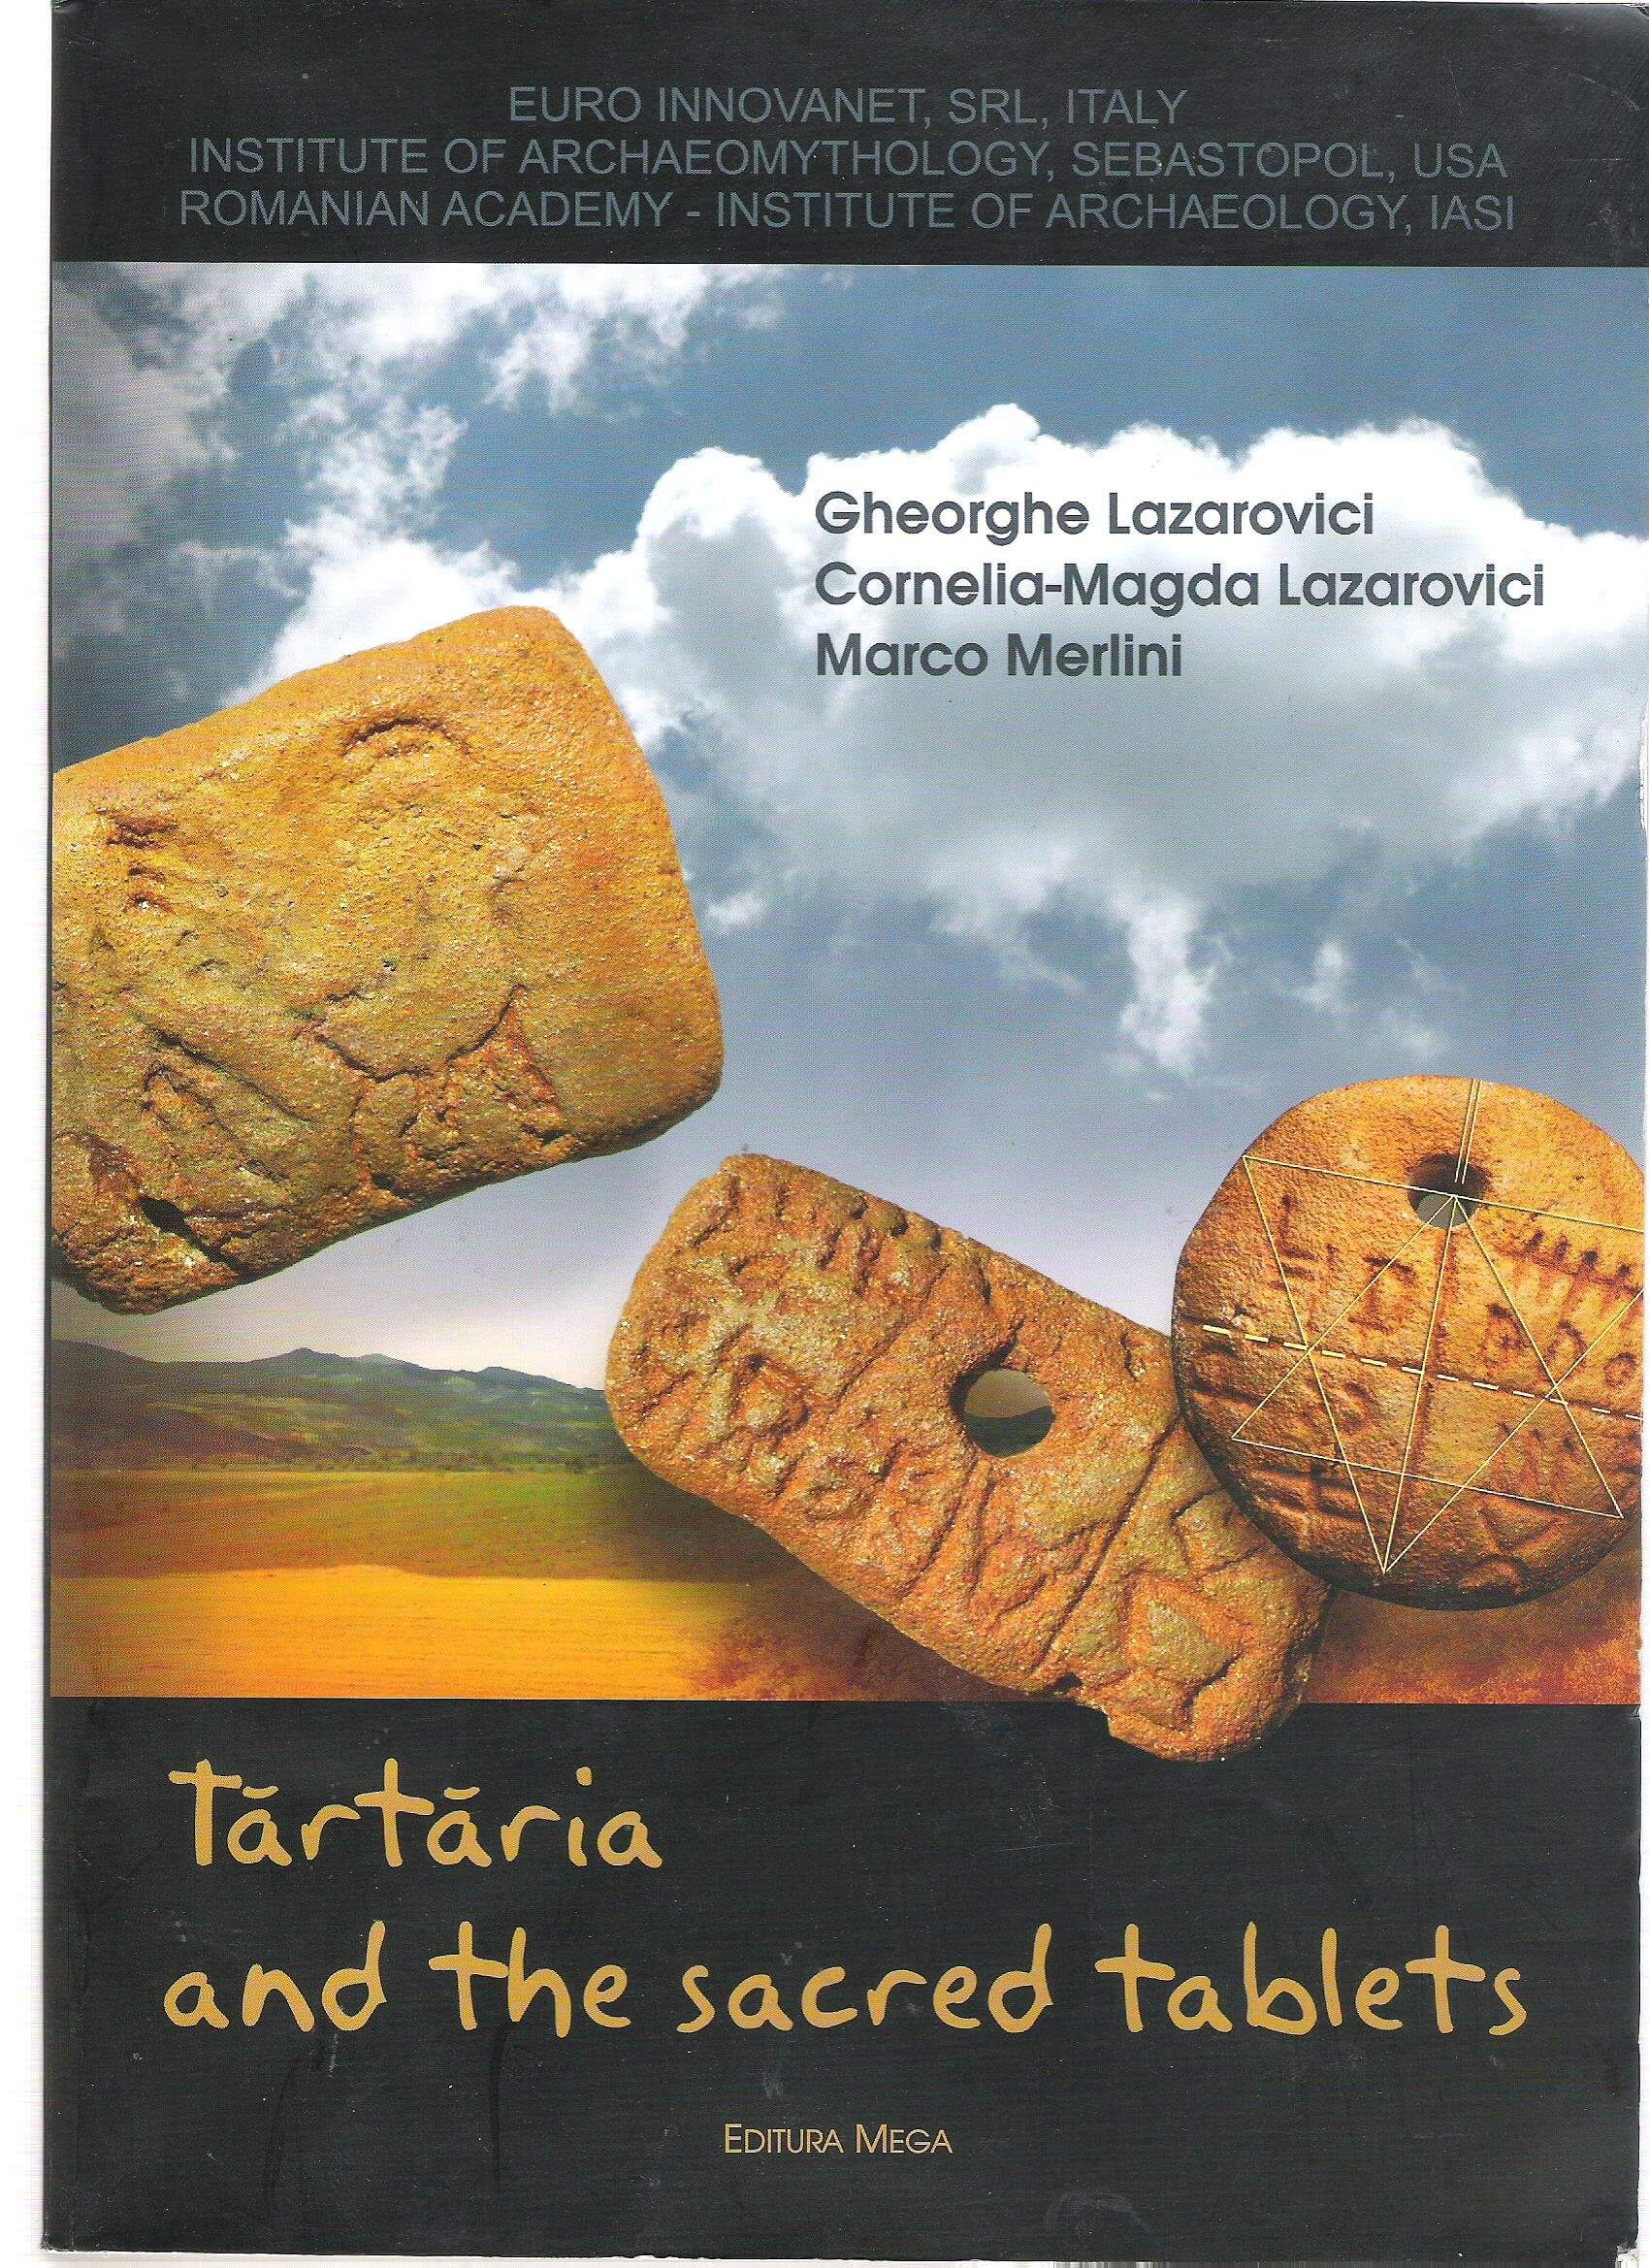 Tartaria and the scacred tablets